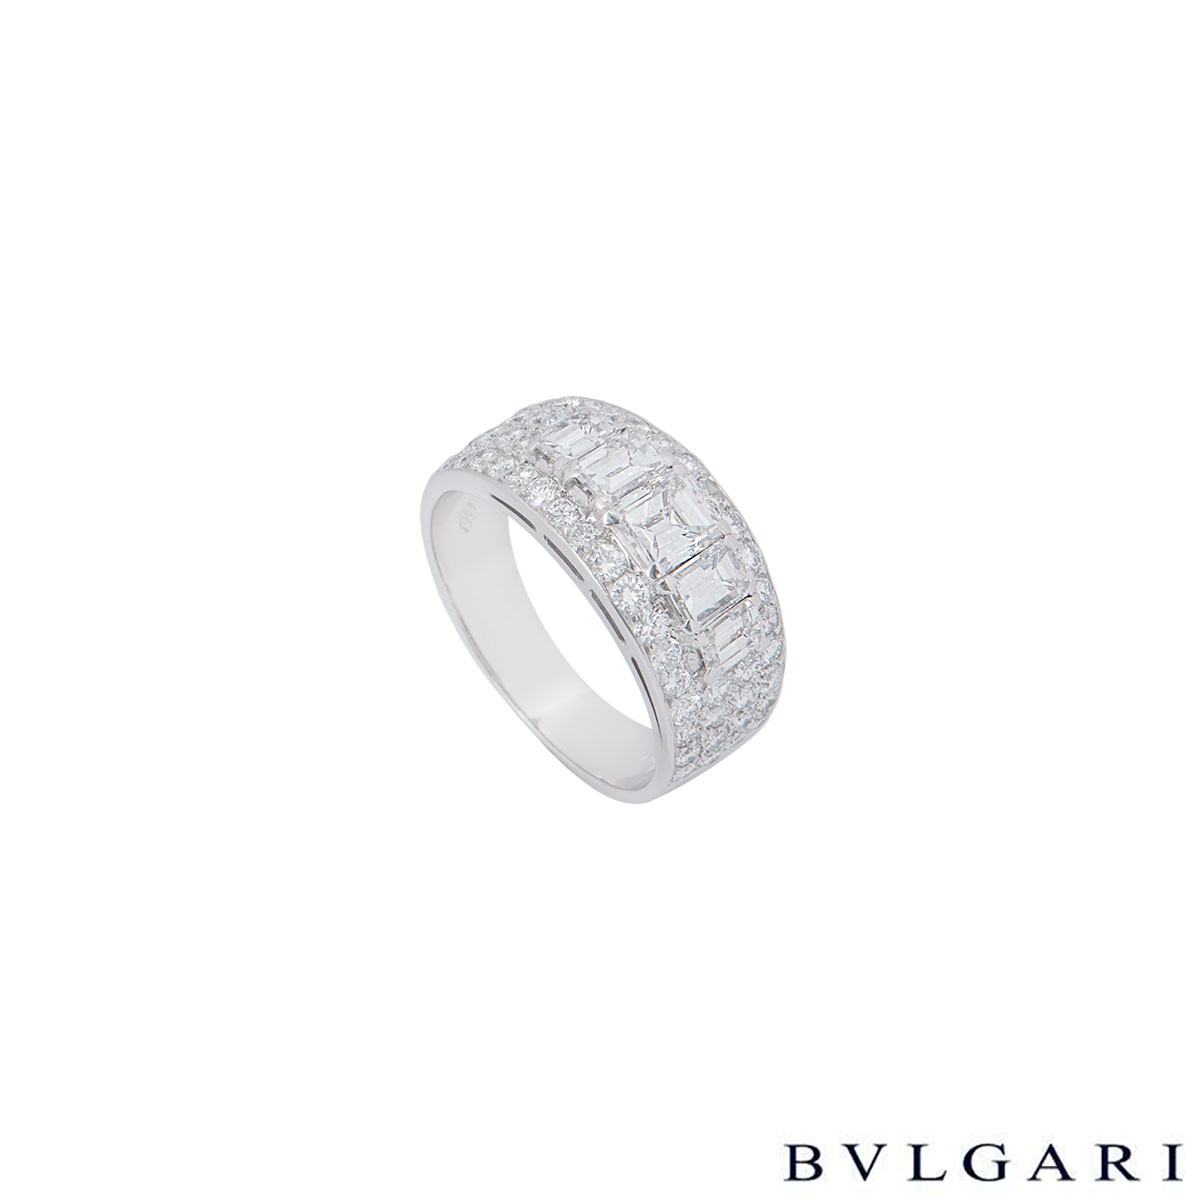 Bvlgari Platinum Diamond Eternity Ring